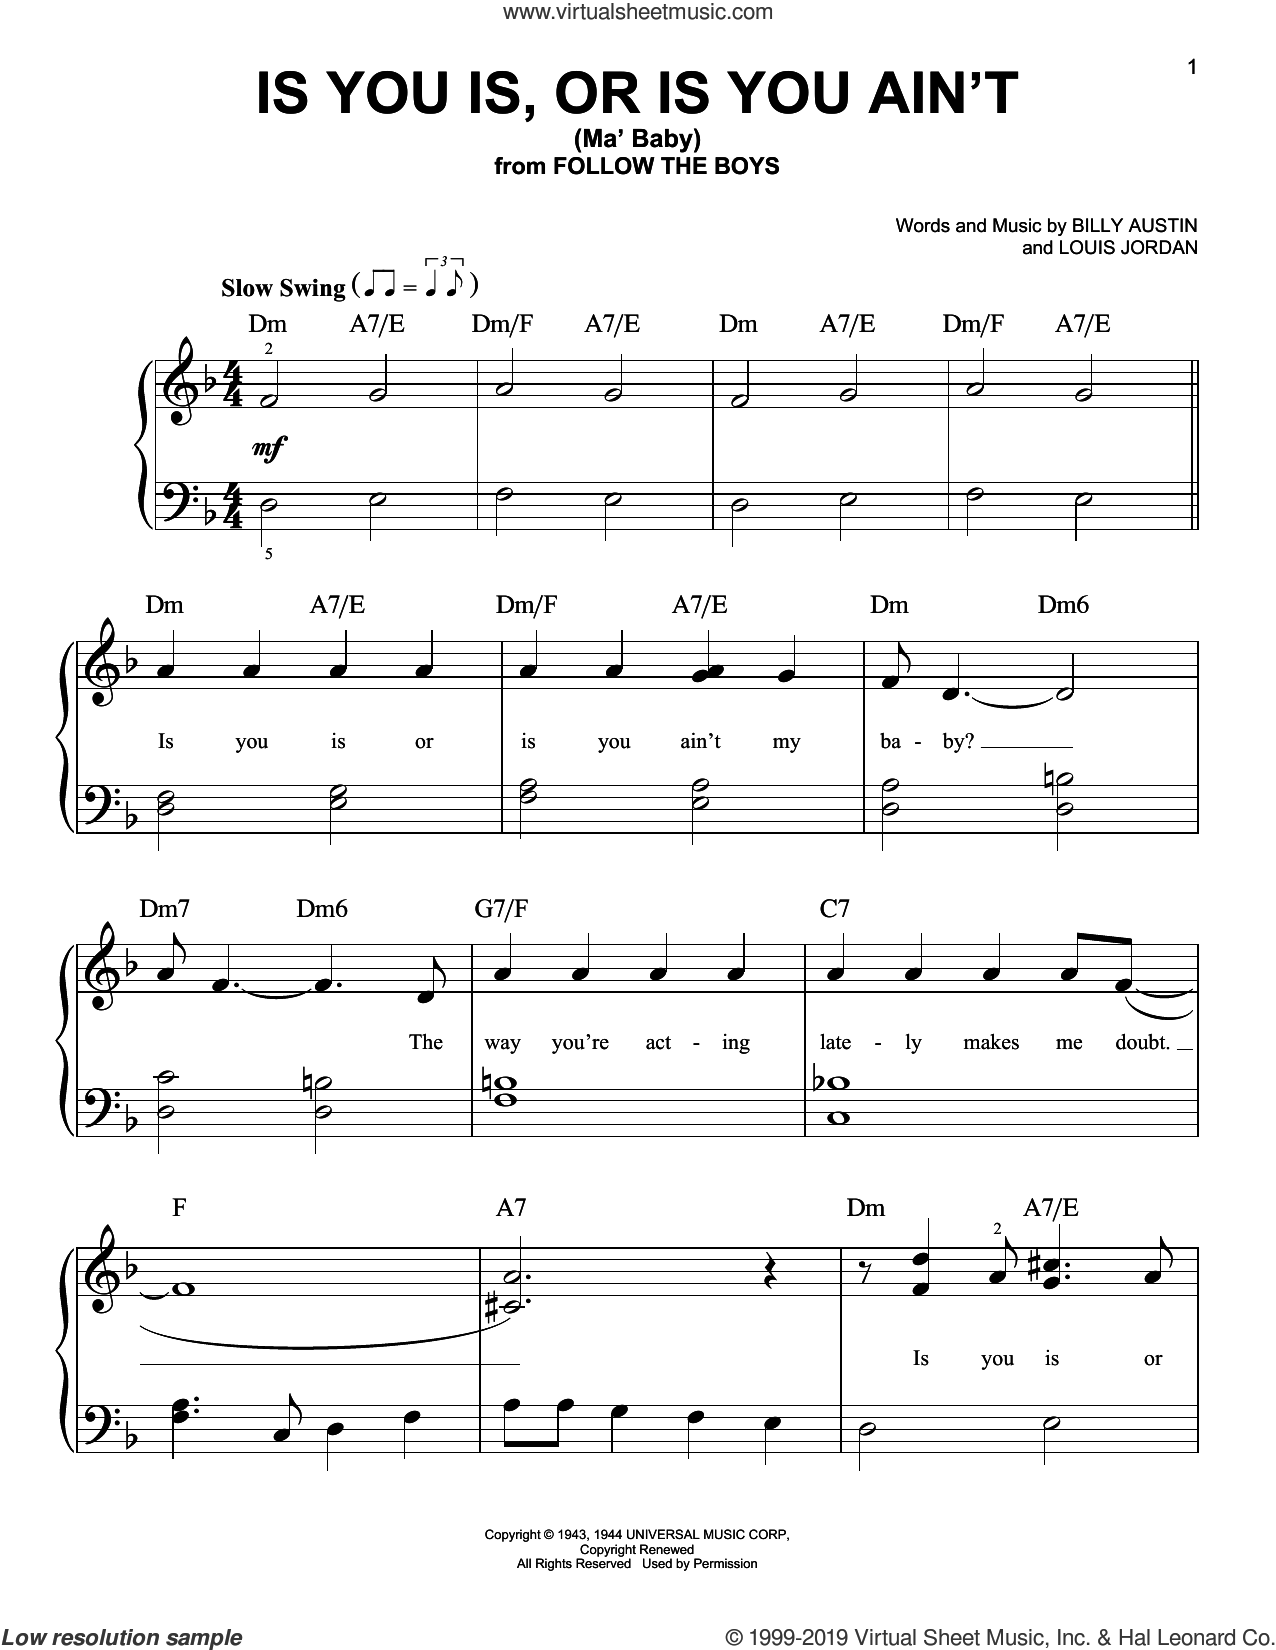 Is You Is, Or Is You Ain't (Ma' Baby) sheet music for piano solo by Louis Jordan and Billy Austin, easy skill level